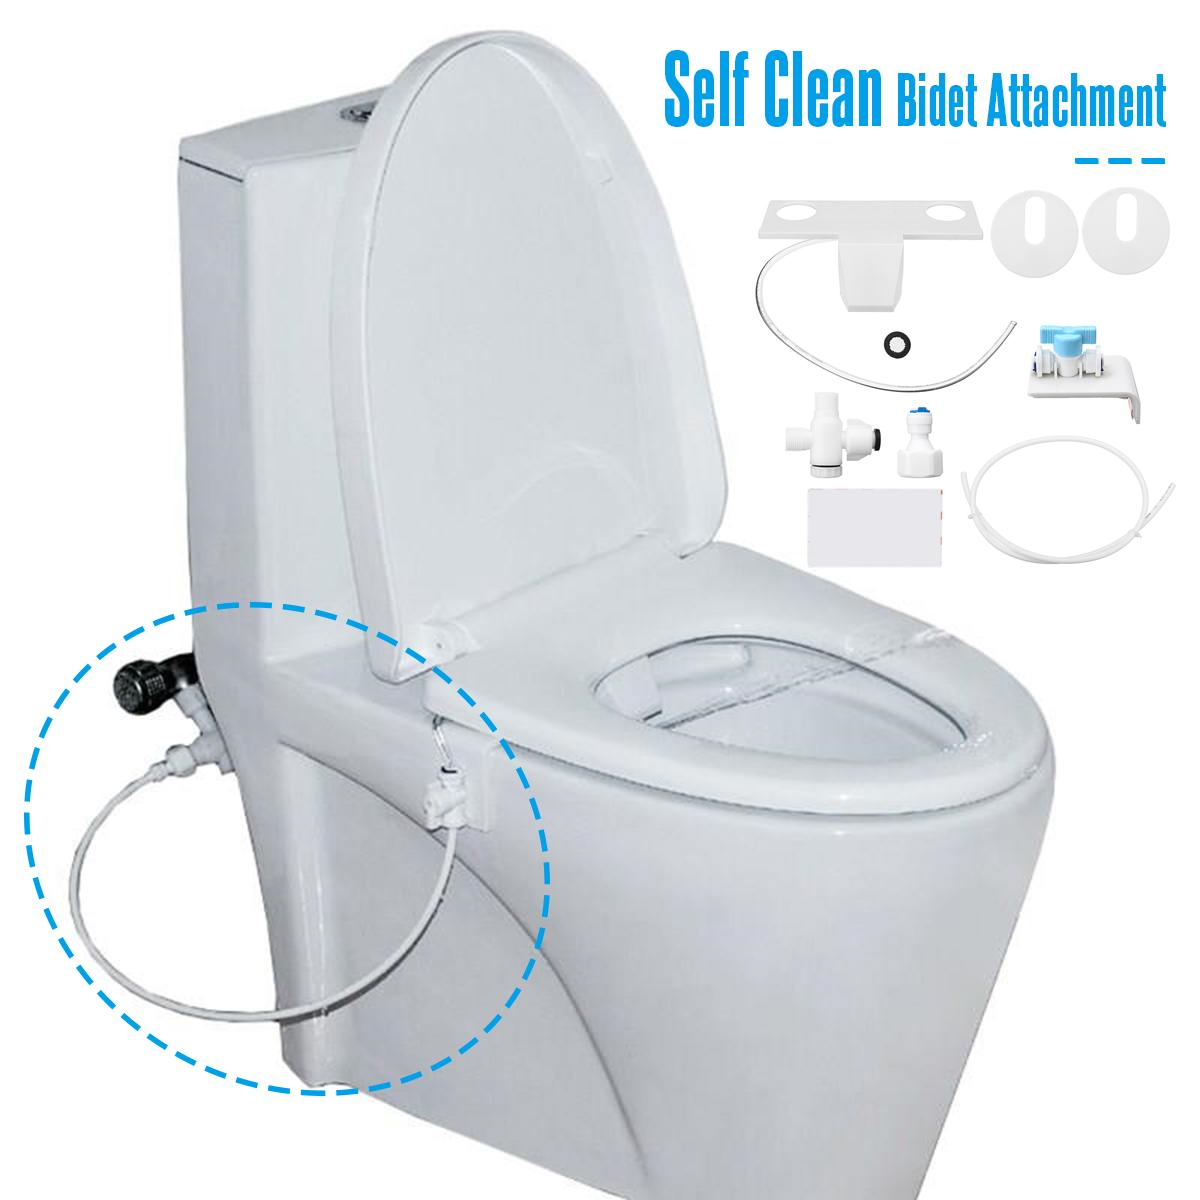 Portable Bidet Attachment Toilet Seat Self-Cleaning Nozzle-Fresh Water Bidet Sprayer Mechanical Wash Flushing Sanitary Device